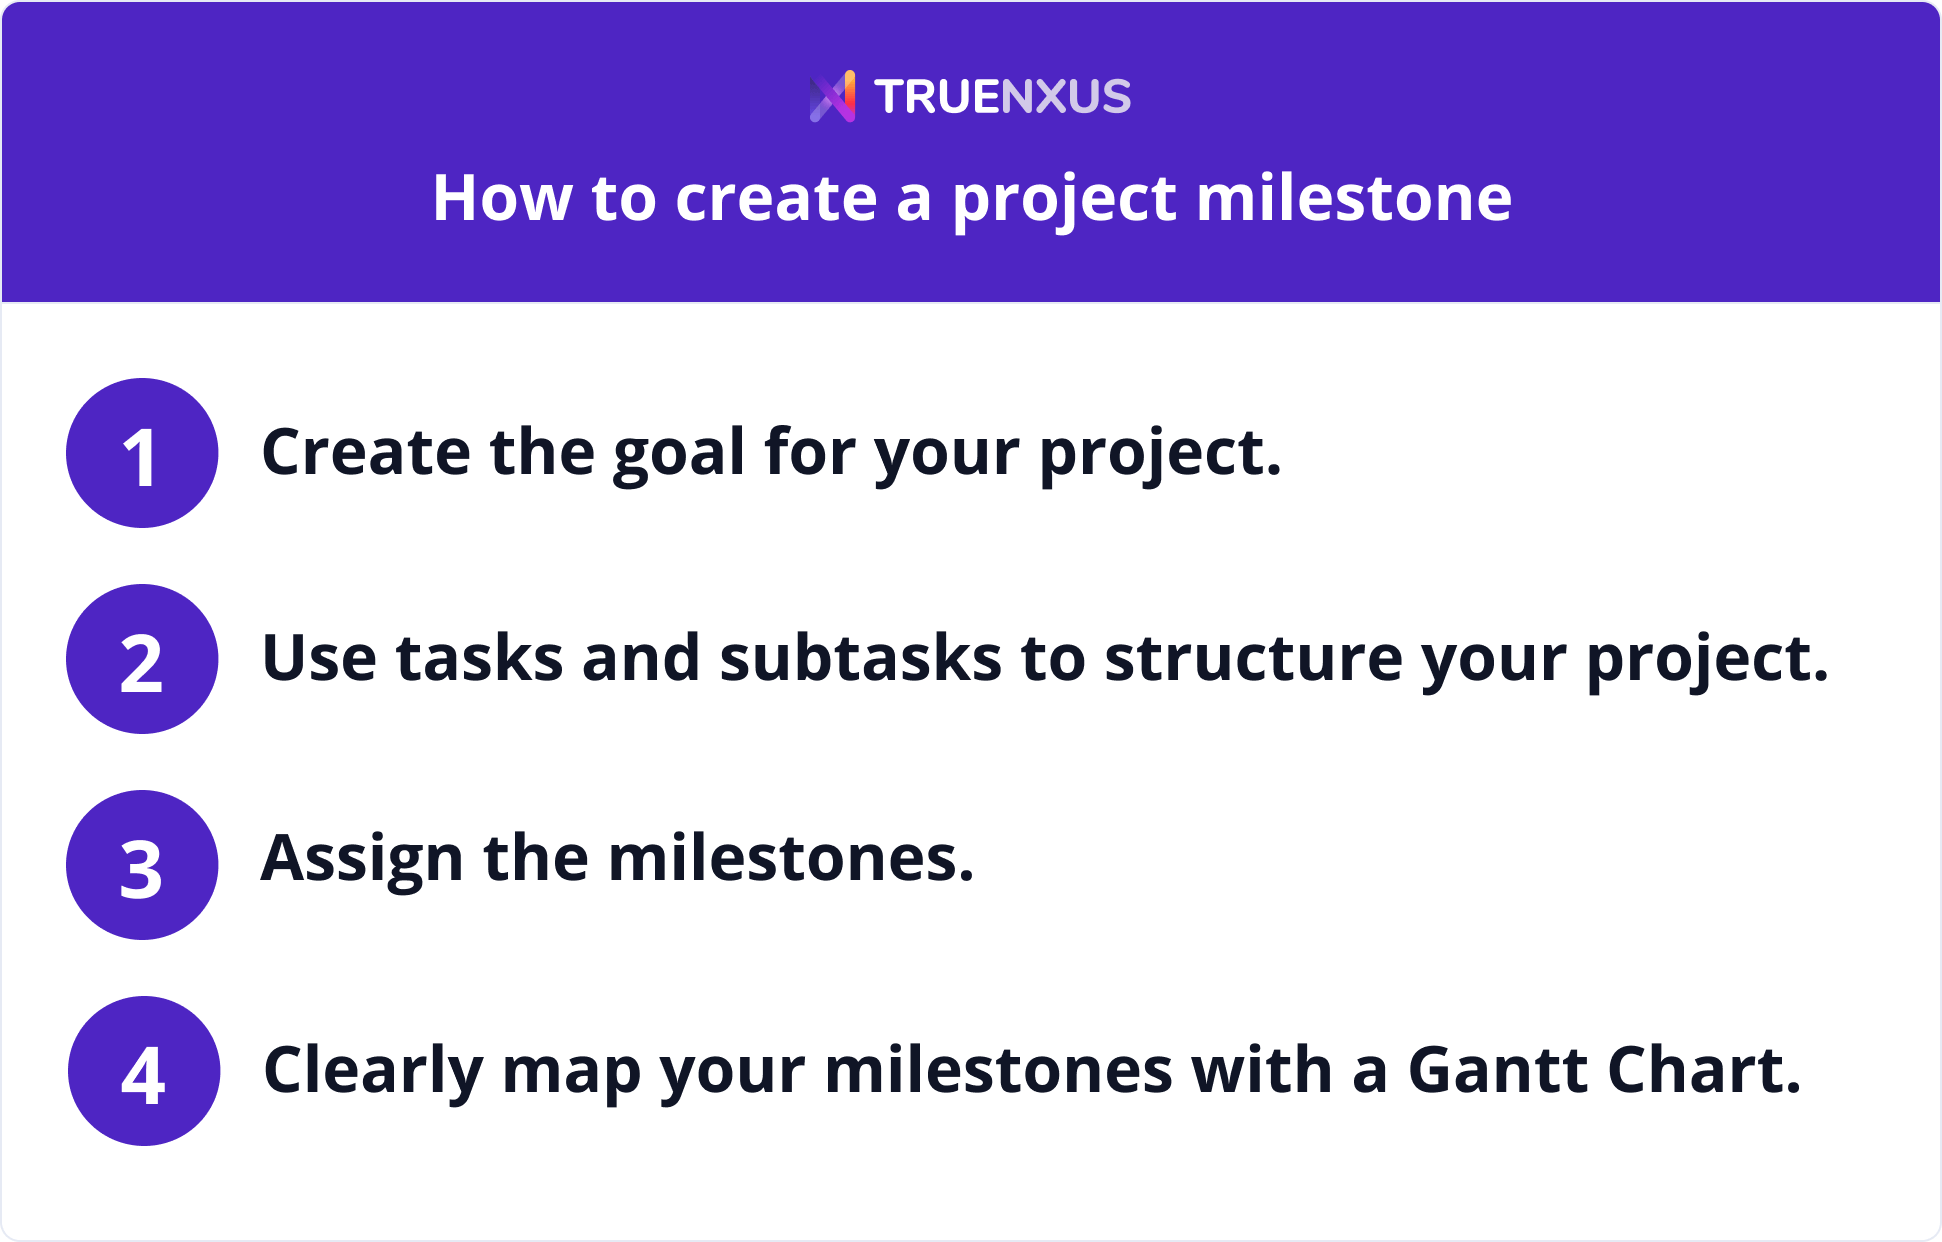 How to create a project milestone